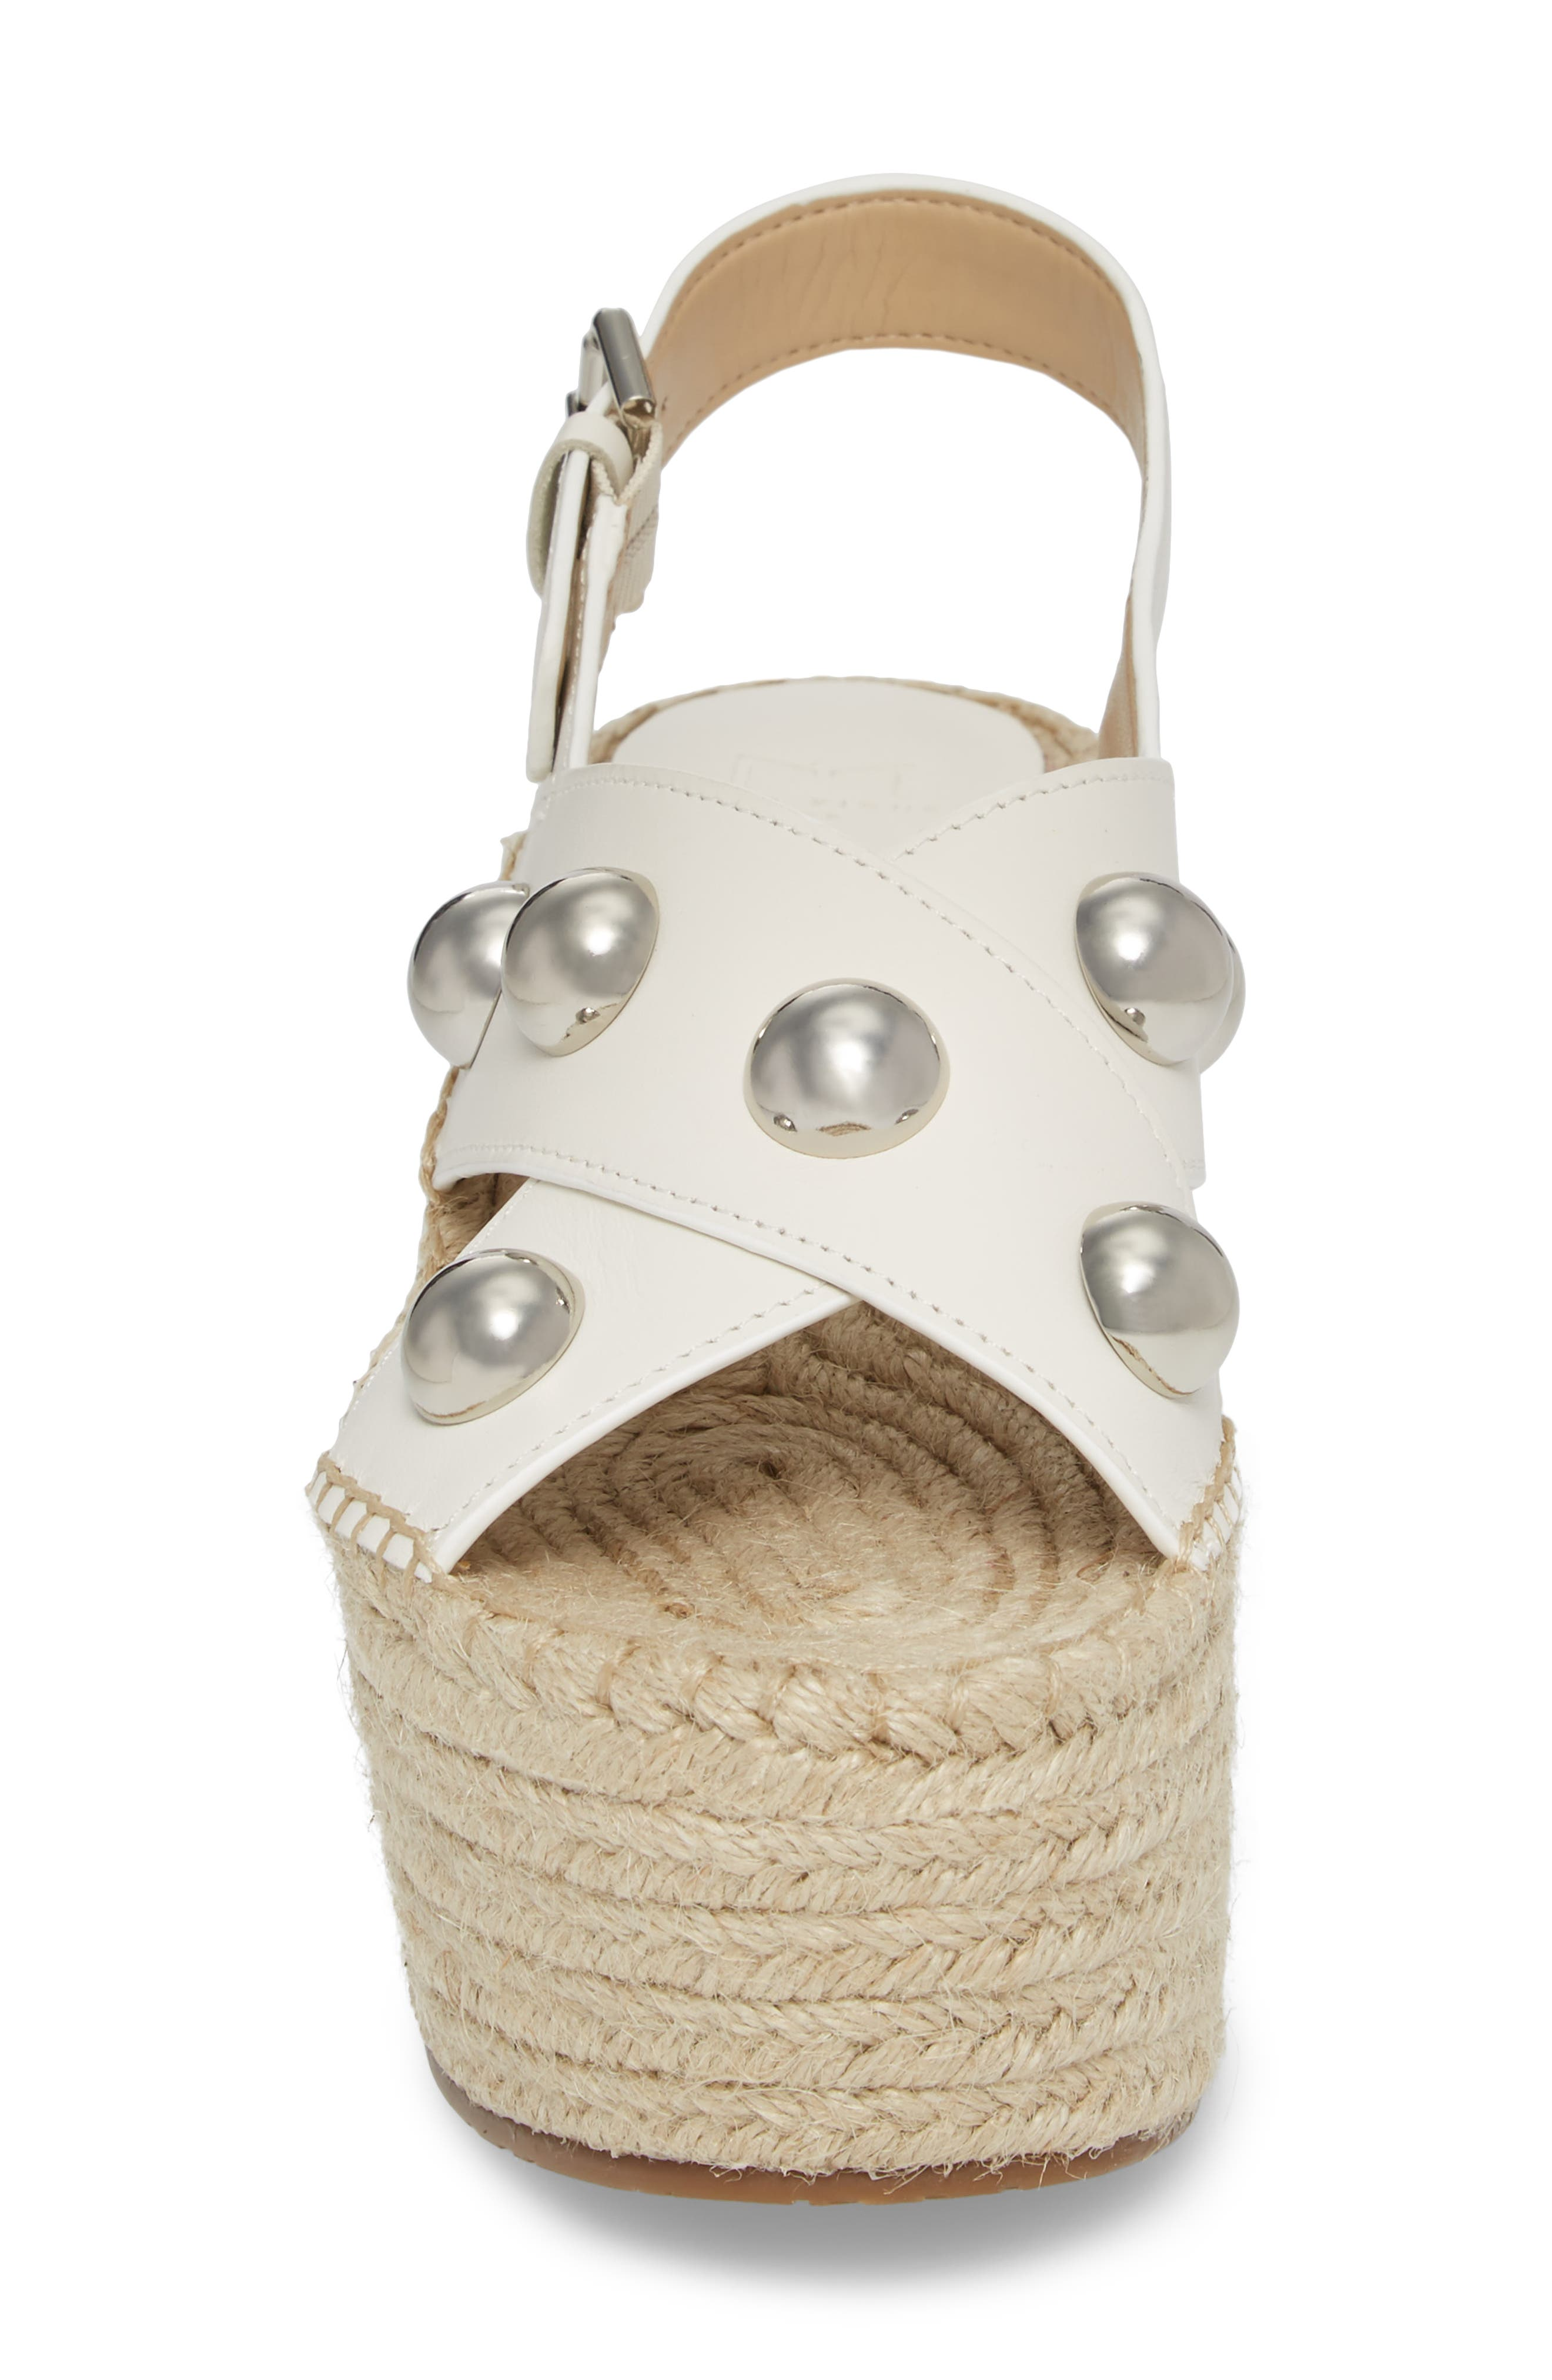 Rella Espadrille Platform Sandal,                             Alternate thumbnail 4, color,                             Ivory Leather